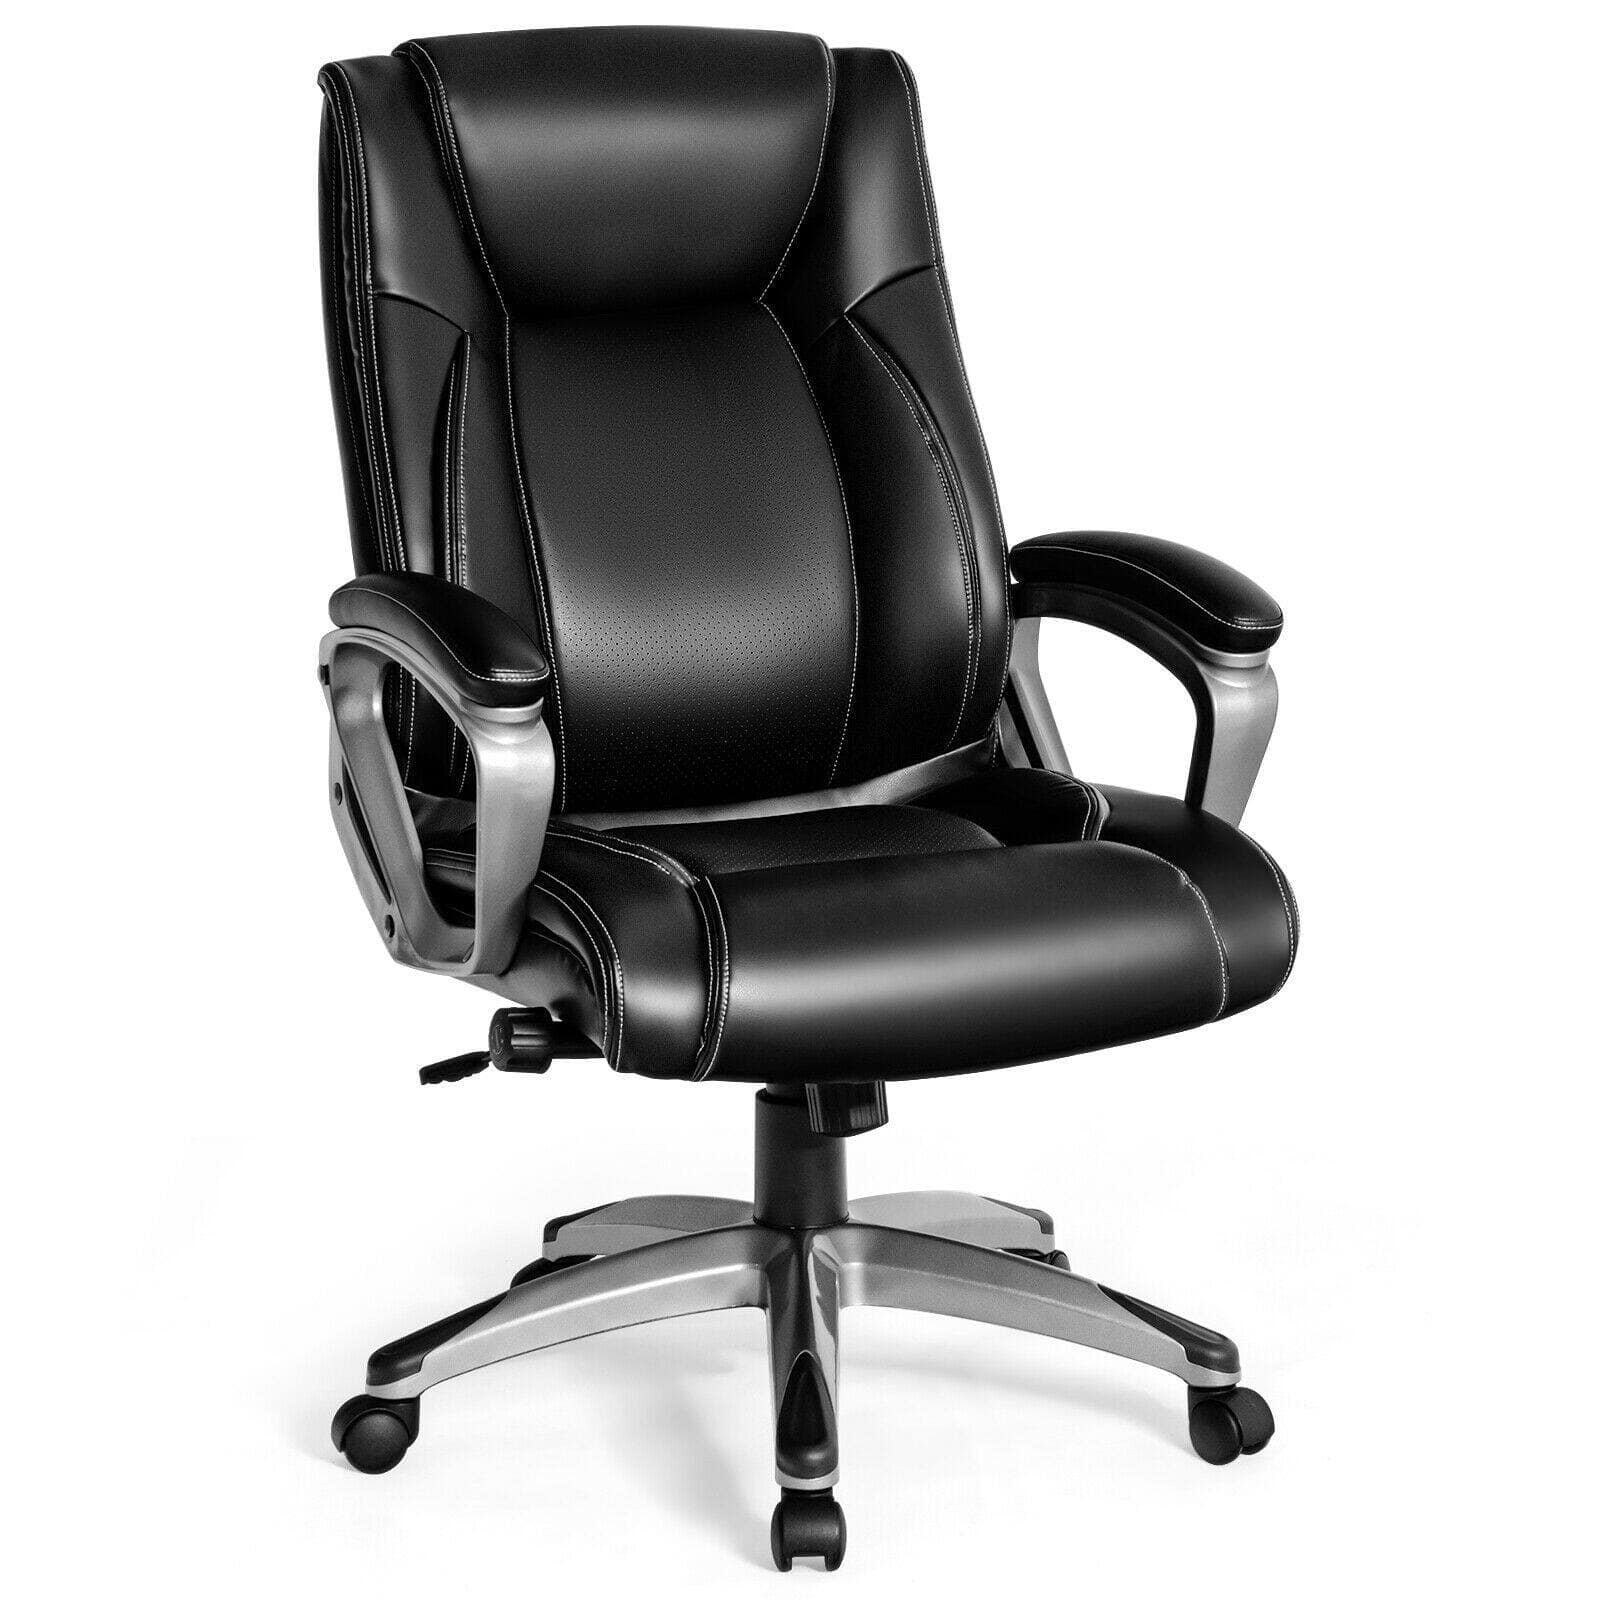 Costway Executive Office Chair Task Swivel Chair with Lumbar Support and High Back + $137.95 + FS